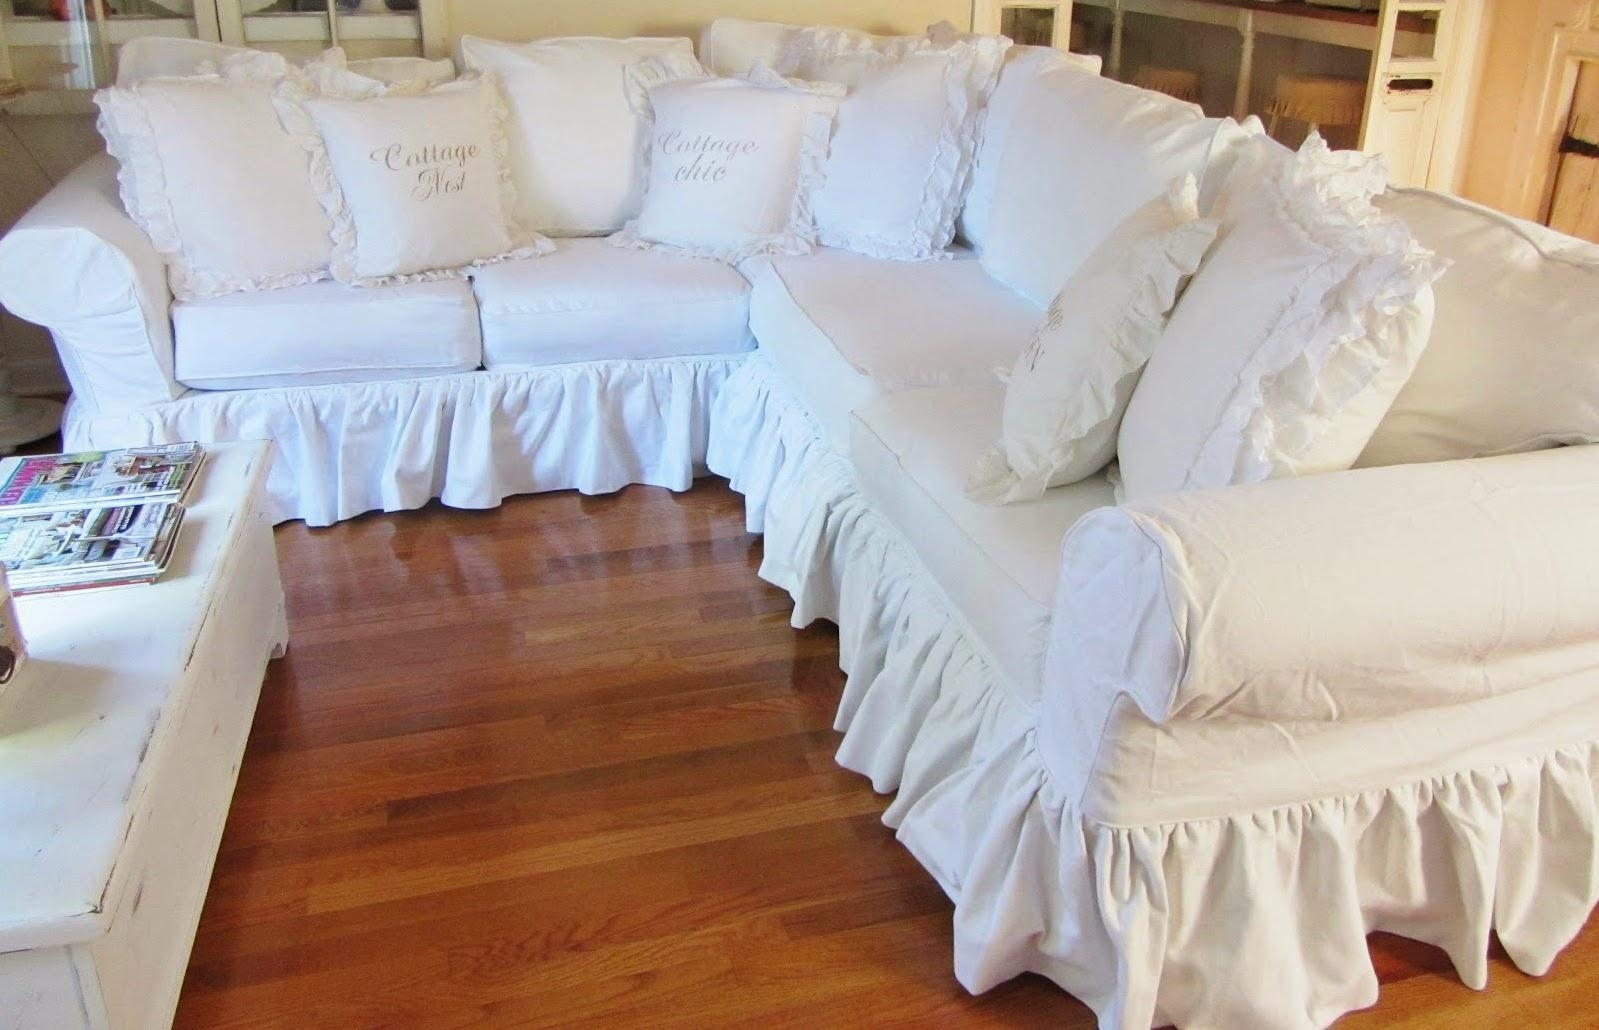 Junk Chic Cottage: White Sectional Sofa For Sale Inside White Sectional Sofa For Sale (Image 10 of 21)